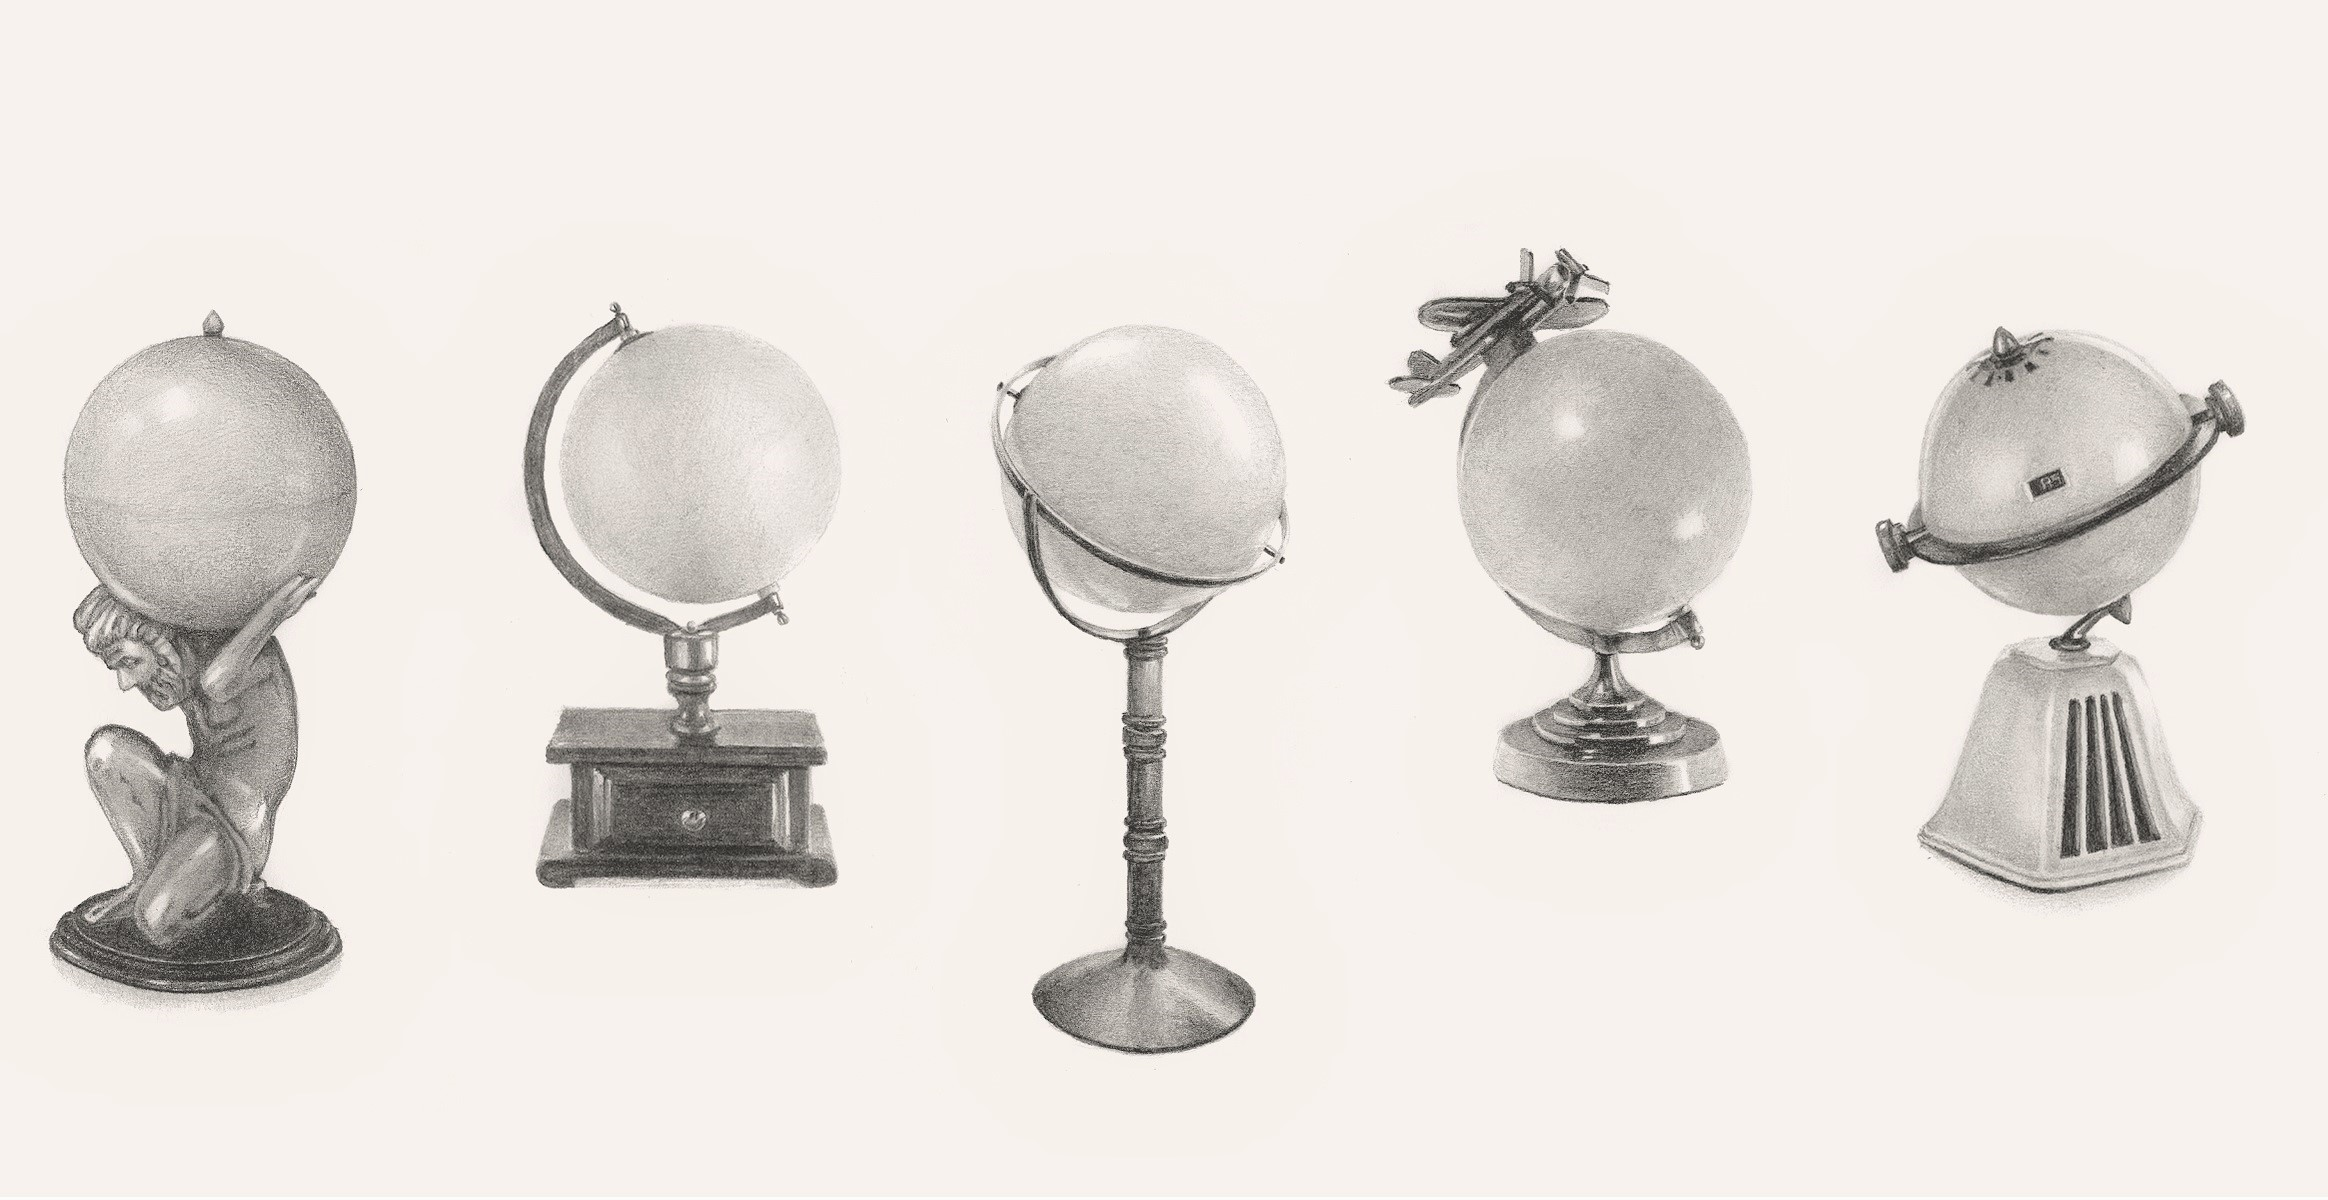 Sketch of four globes by Hondartza Fraga